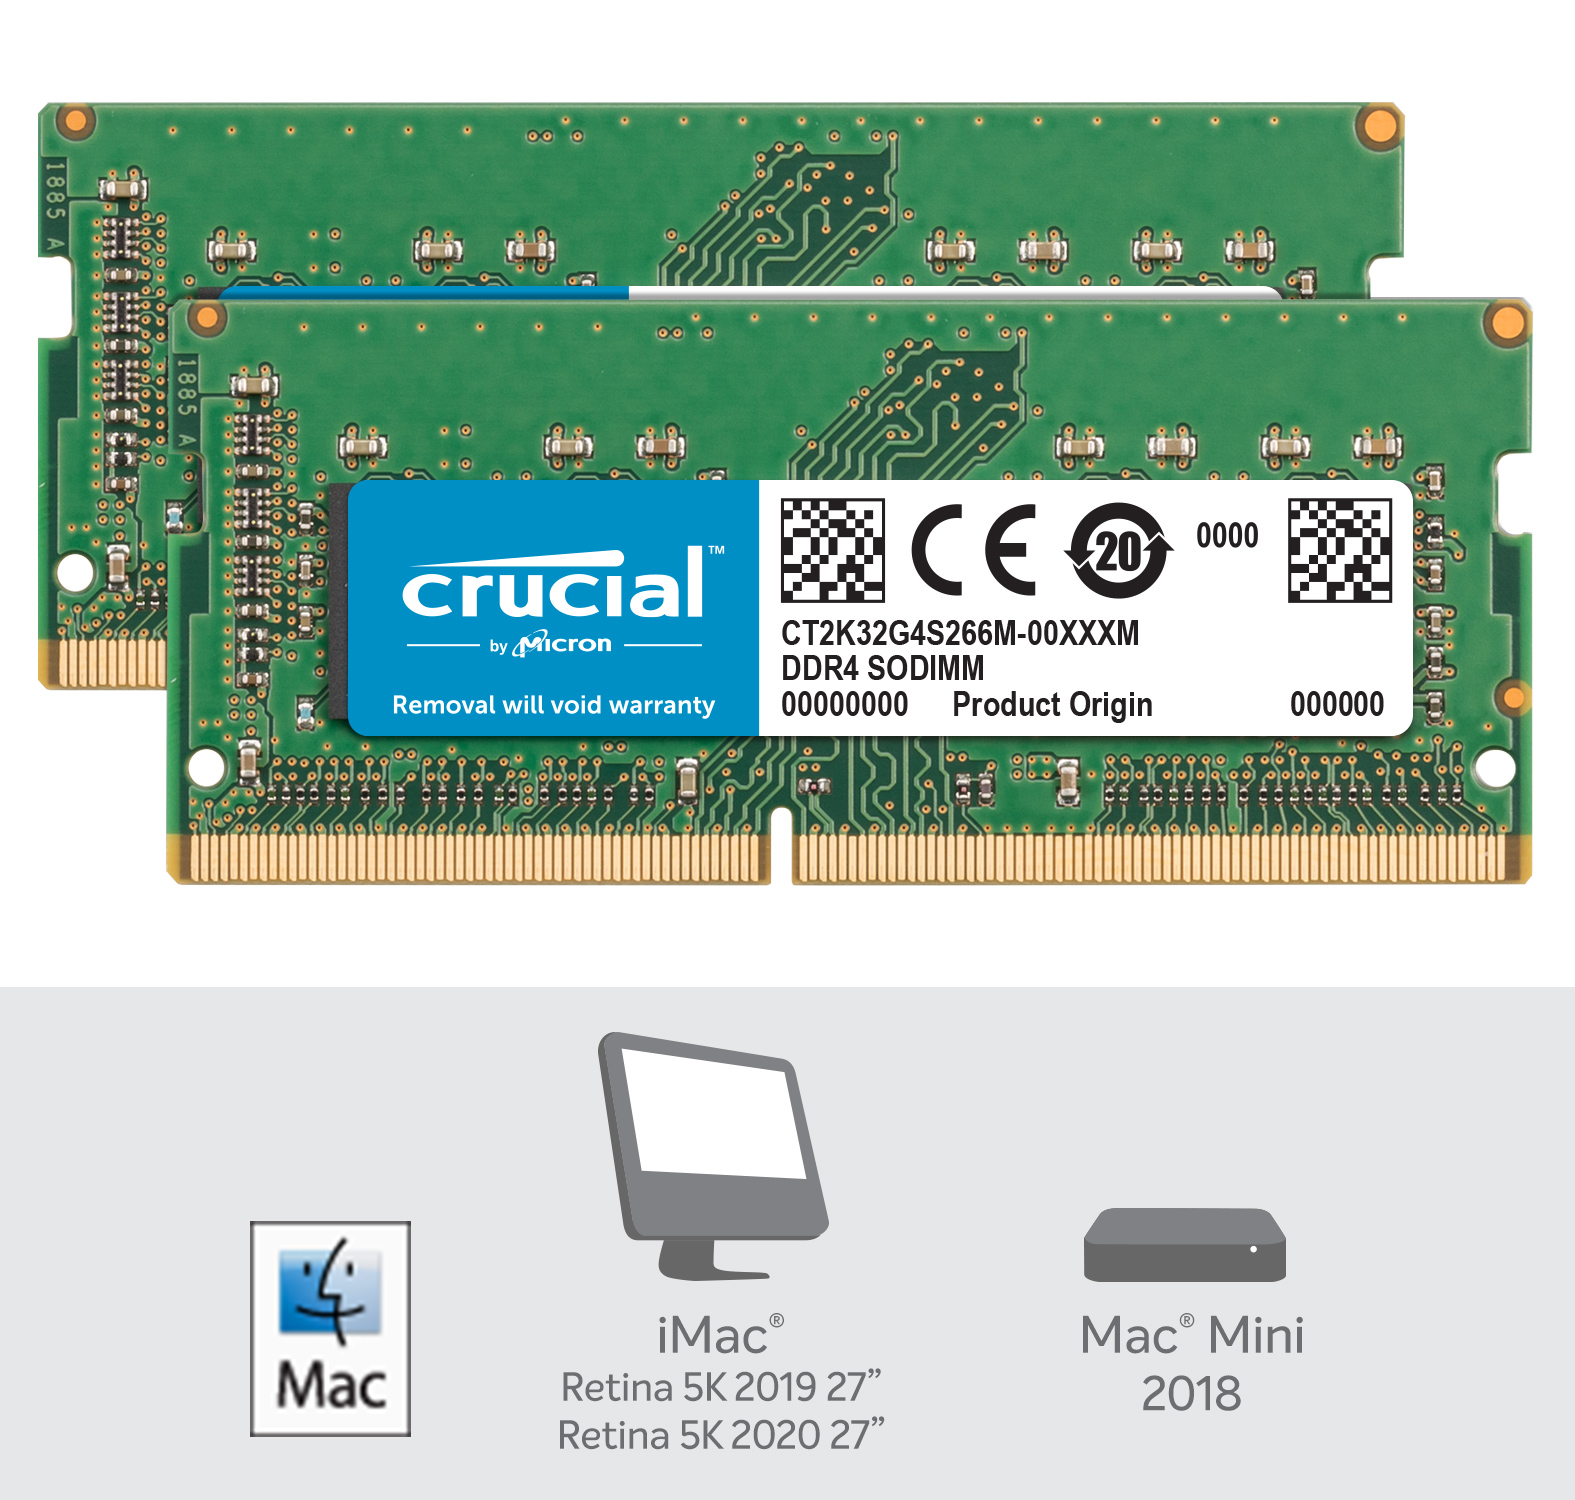 Crucial 64GB Kit (2 x 32GB) DDR4-2666 SODIMM Memory for Mac- view 2